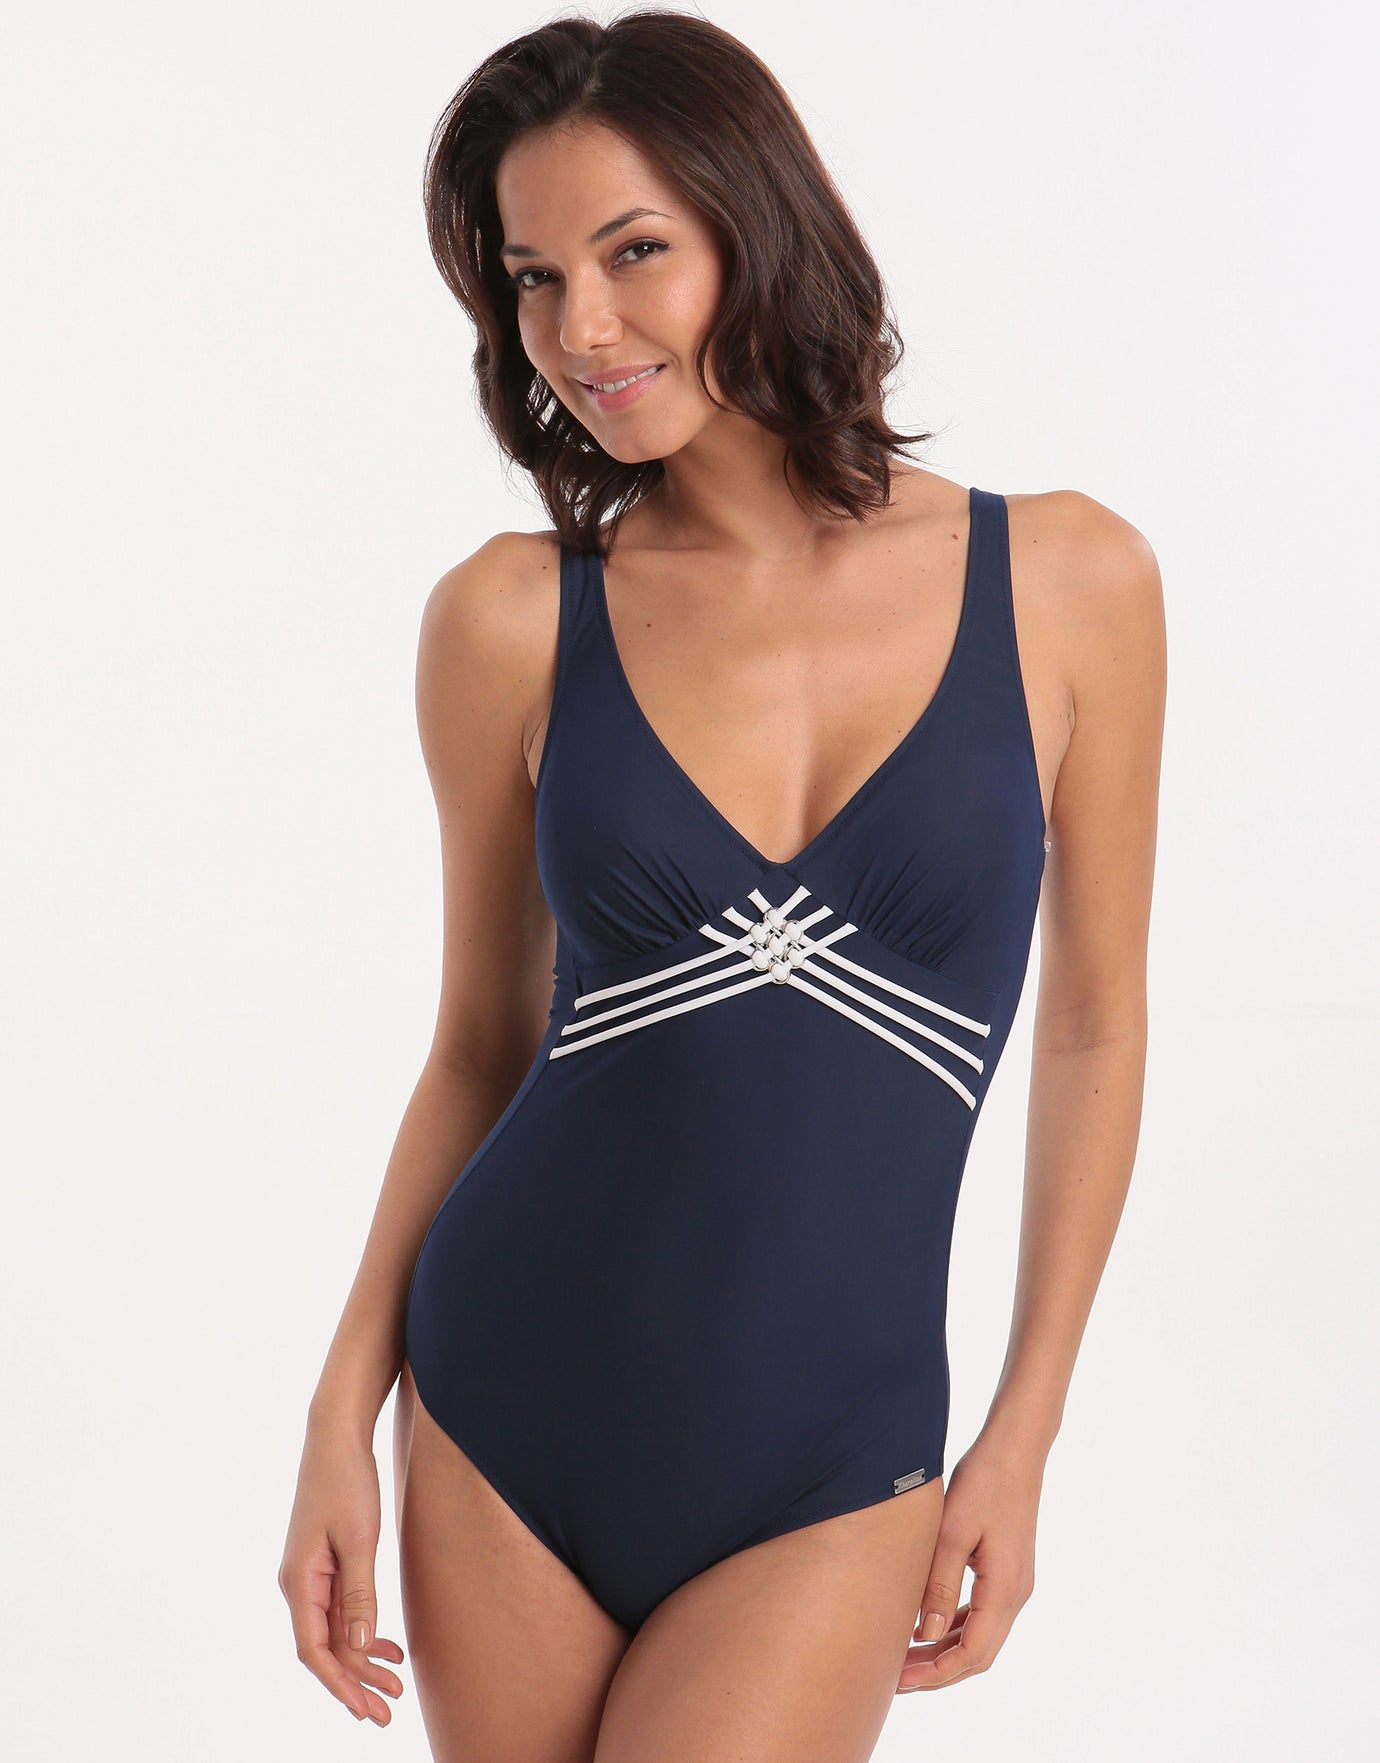 Charmline Sailing Lines Swimsuit - Navy/White